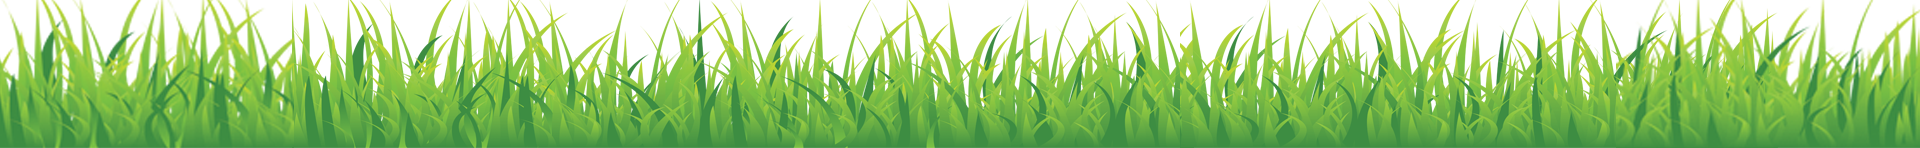 Grass-for-Sprout.png